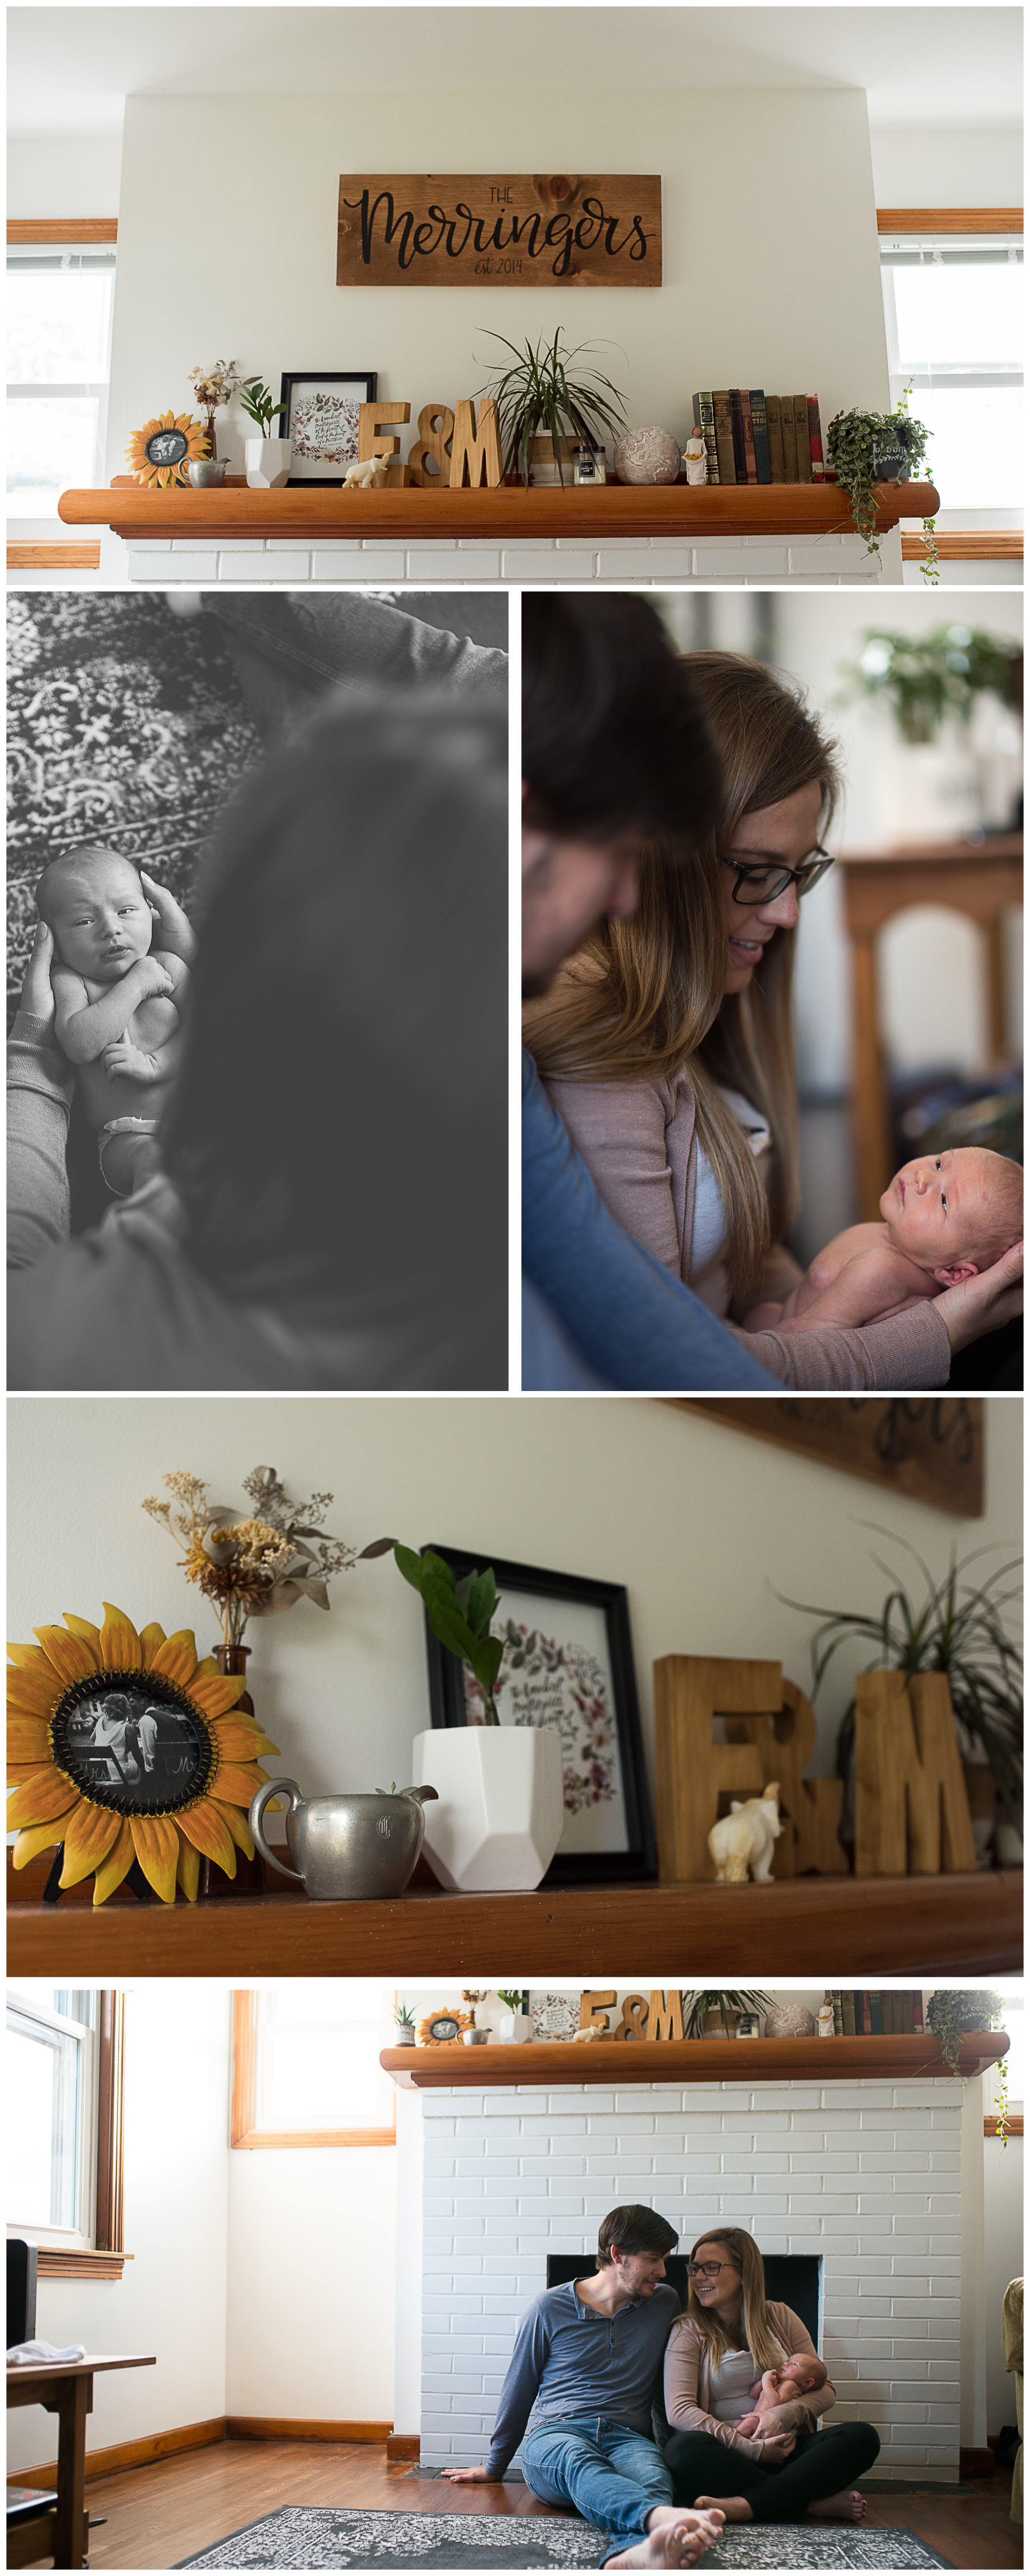 Bear Creative Co., Lifestyle Photography, Columbus Ohio Photographer, Family Session, Newborns, In Home Sessions